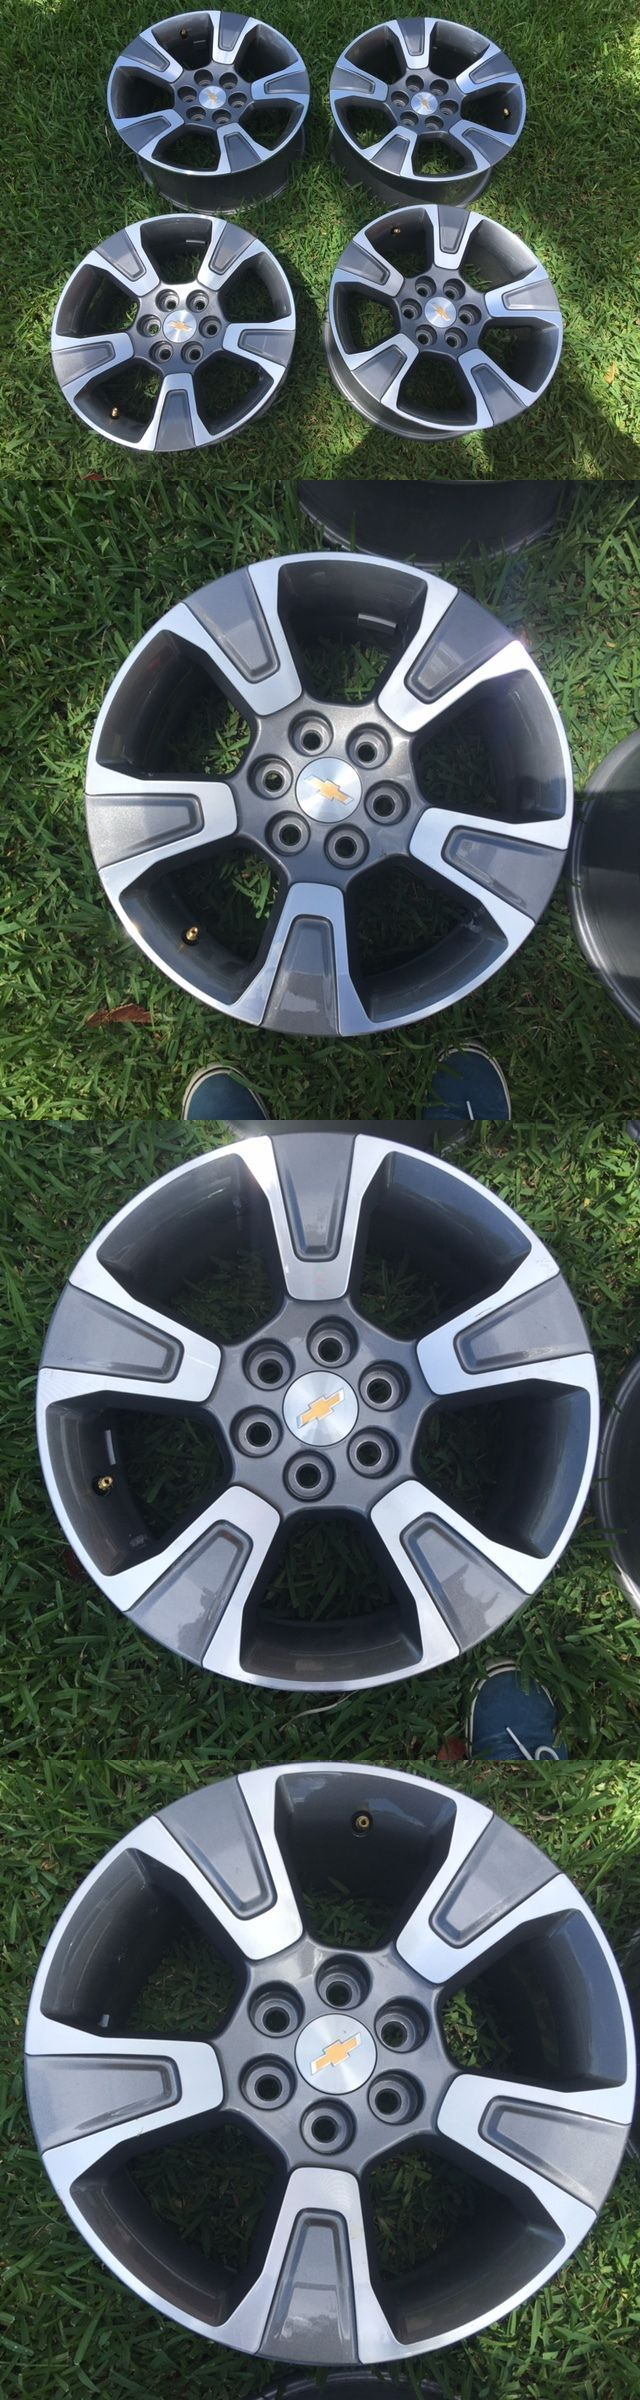 auto parts - general: 2015 2016 2017 Chevy Colorado 17 Wheels Alloy - 99% New Factory Oem Orignal -> BUY IT NOW ONLY: $270 on eBay!